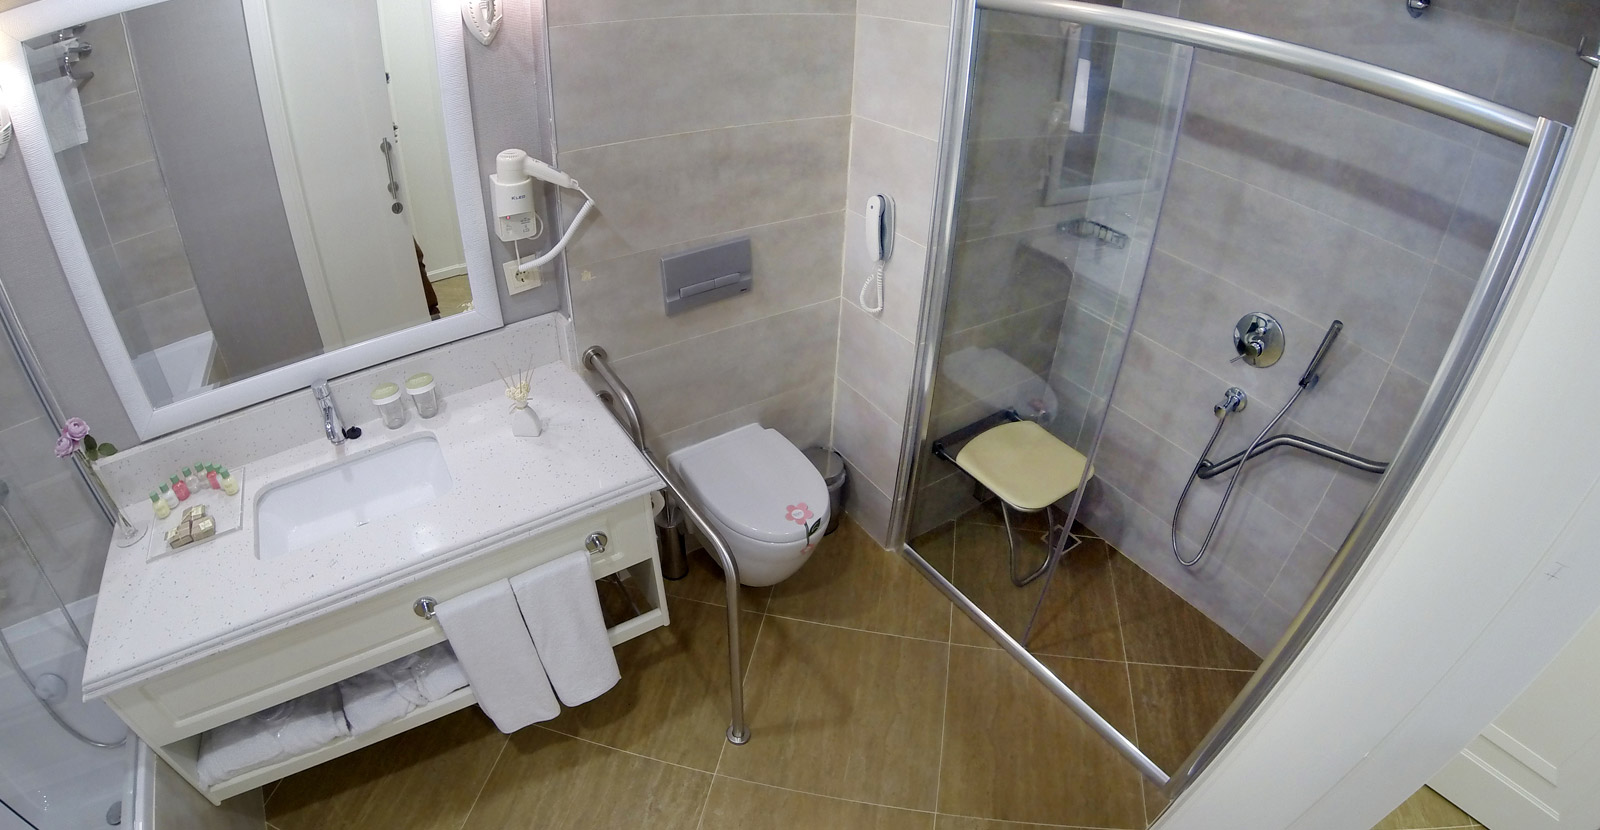 Wheelchair Requirements For Hotel Room